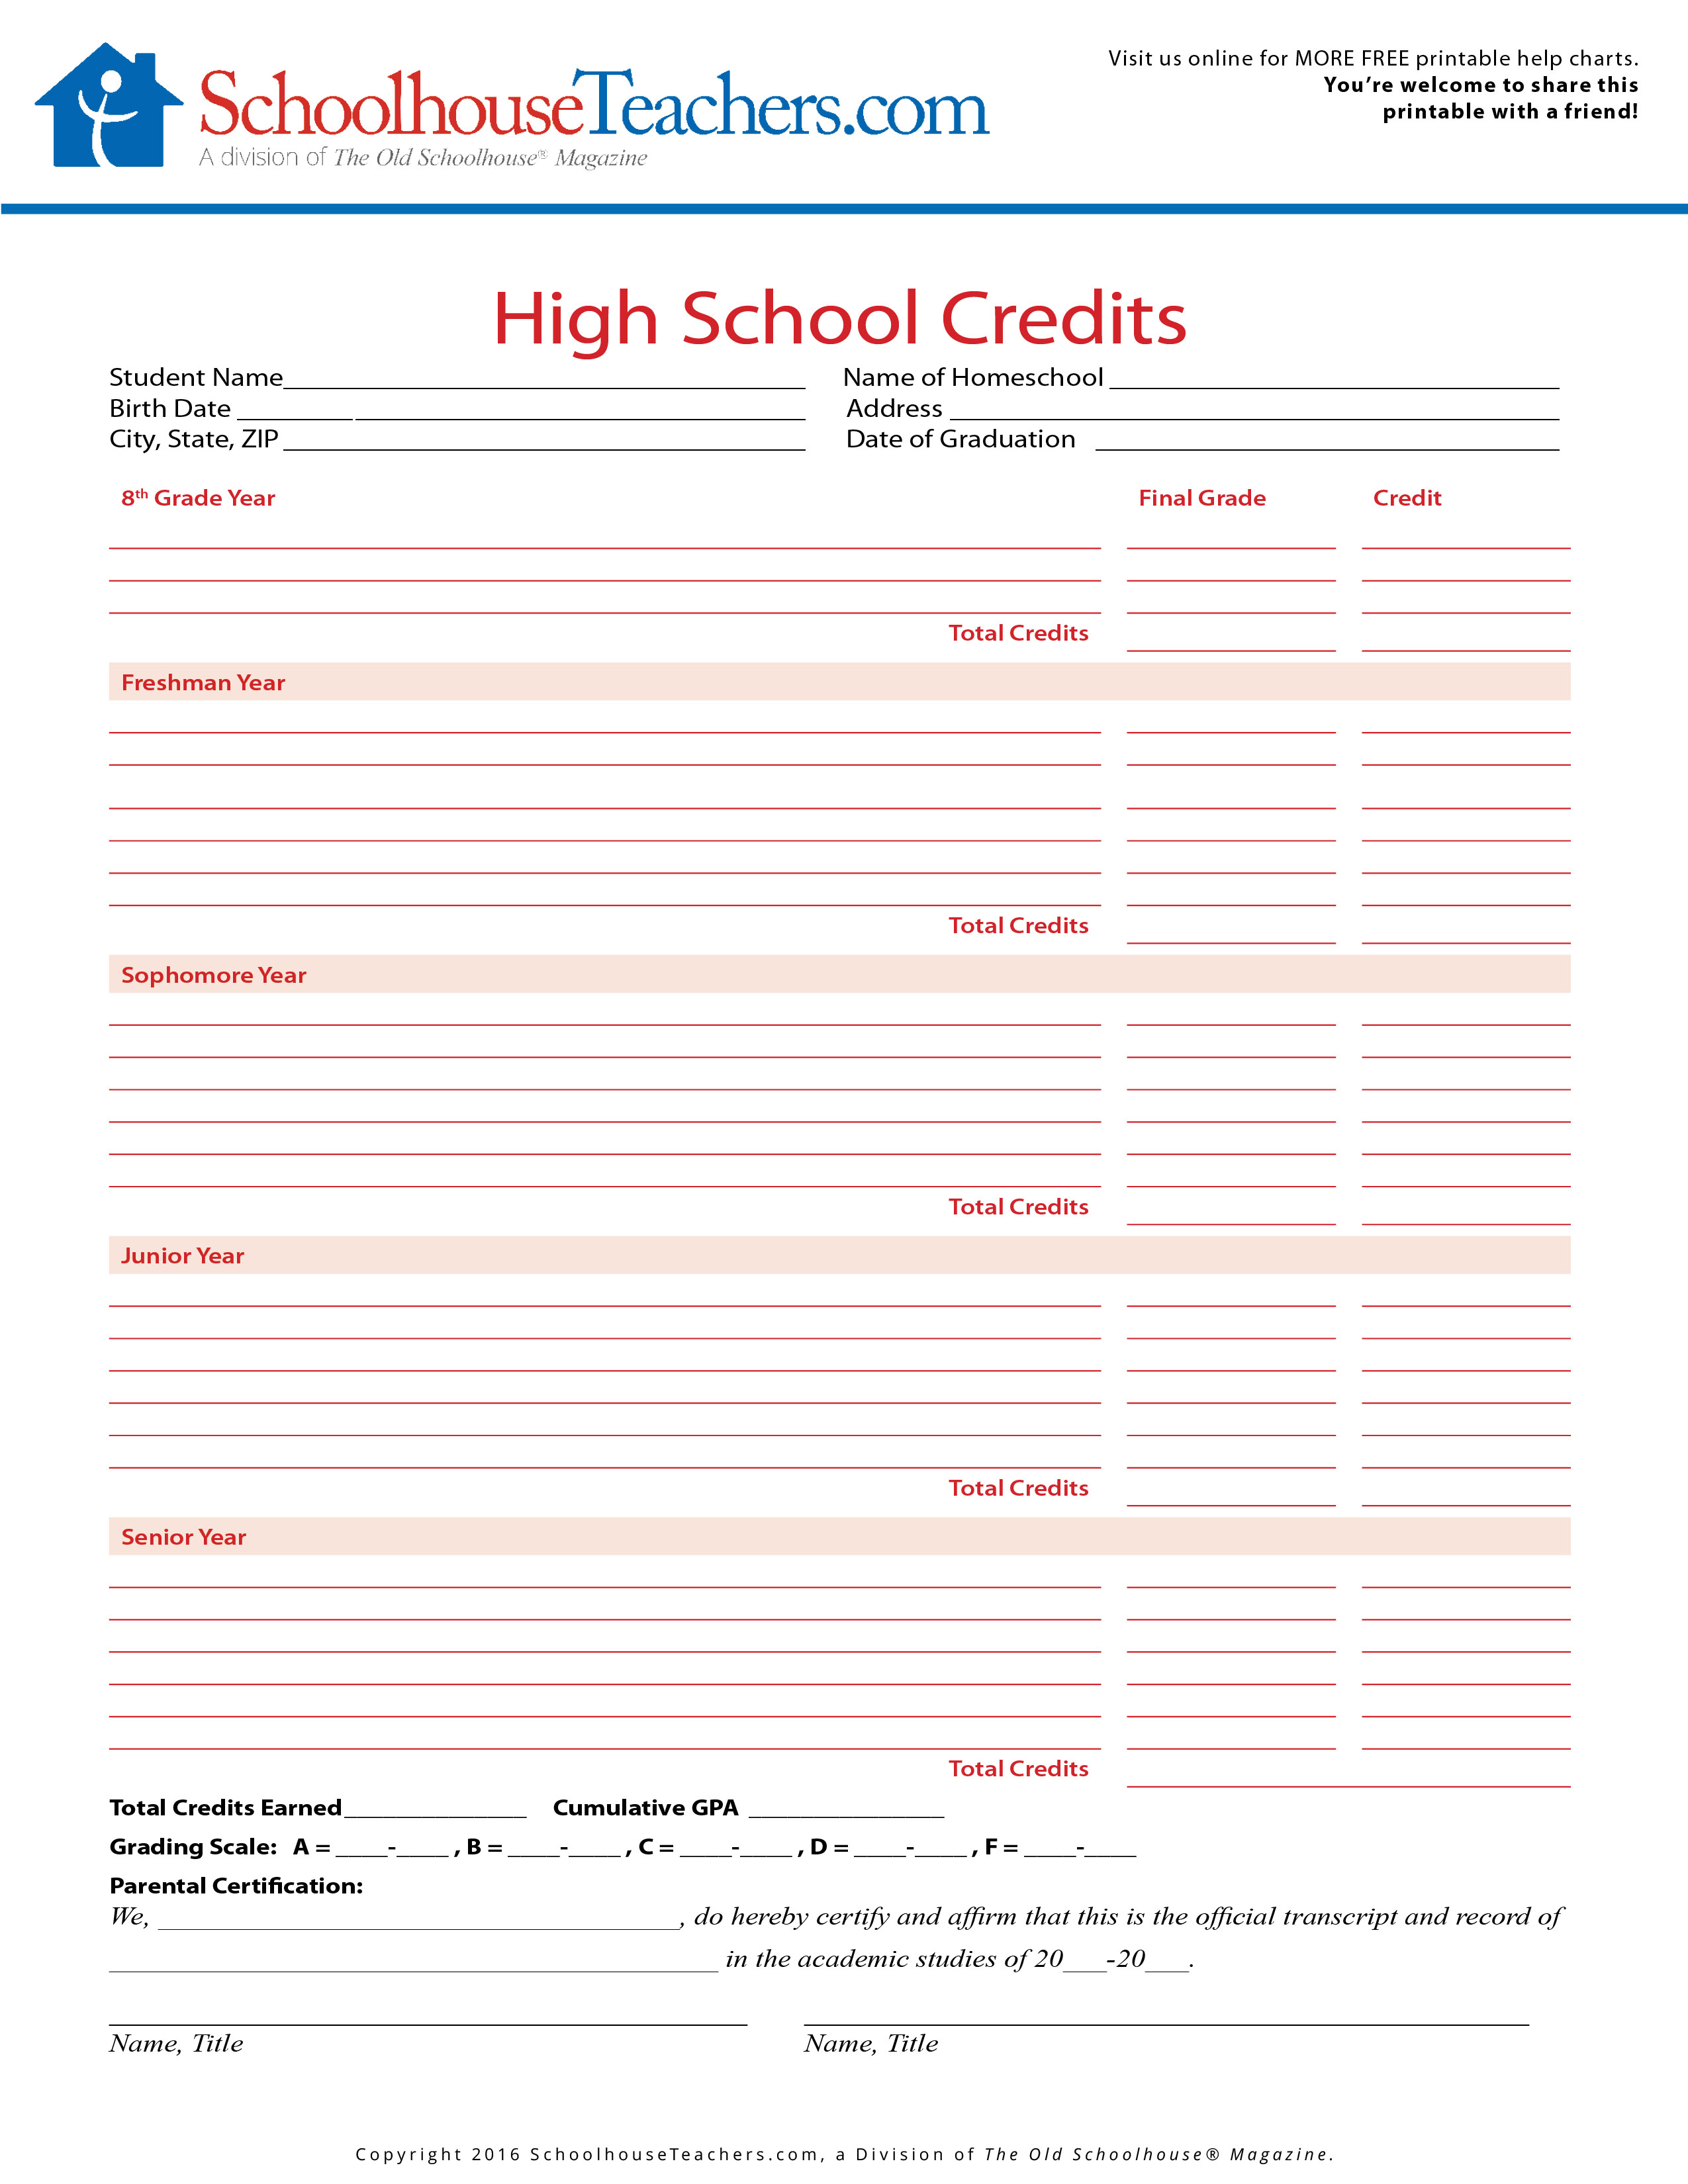 There Are Plenty Of Planners And Checklists To Choose From Please Share  Our Charts With Your Friends! Click Here To Find More Free Highschool And  College